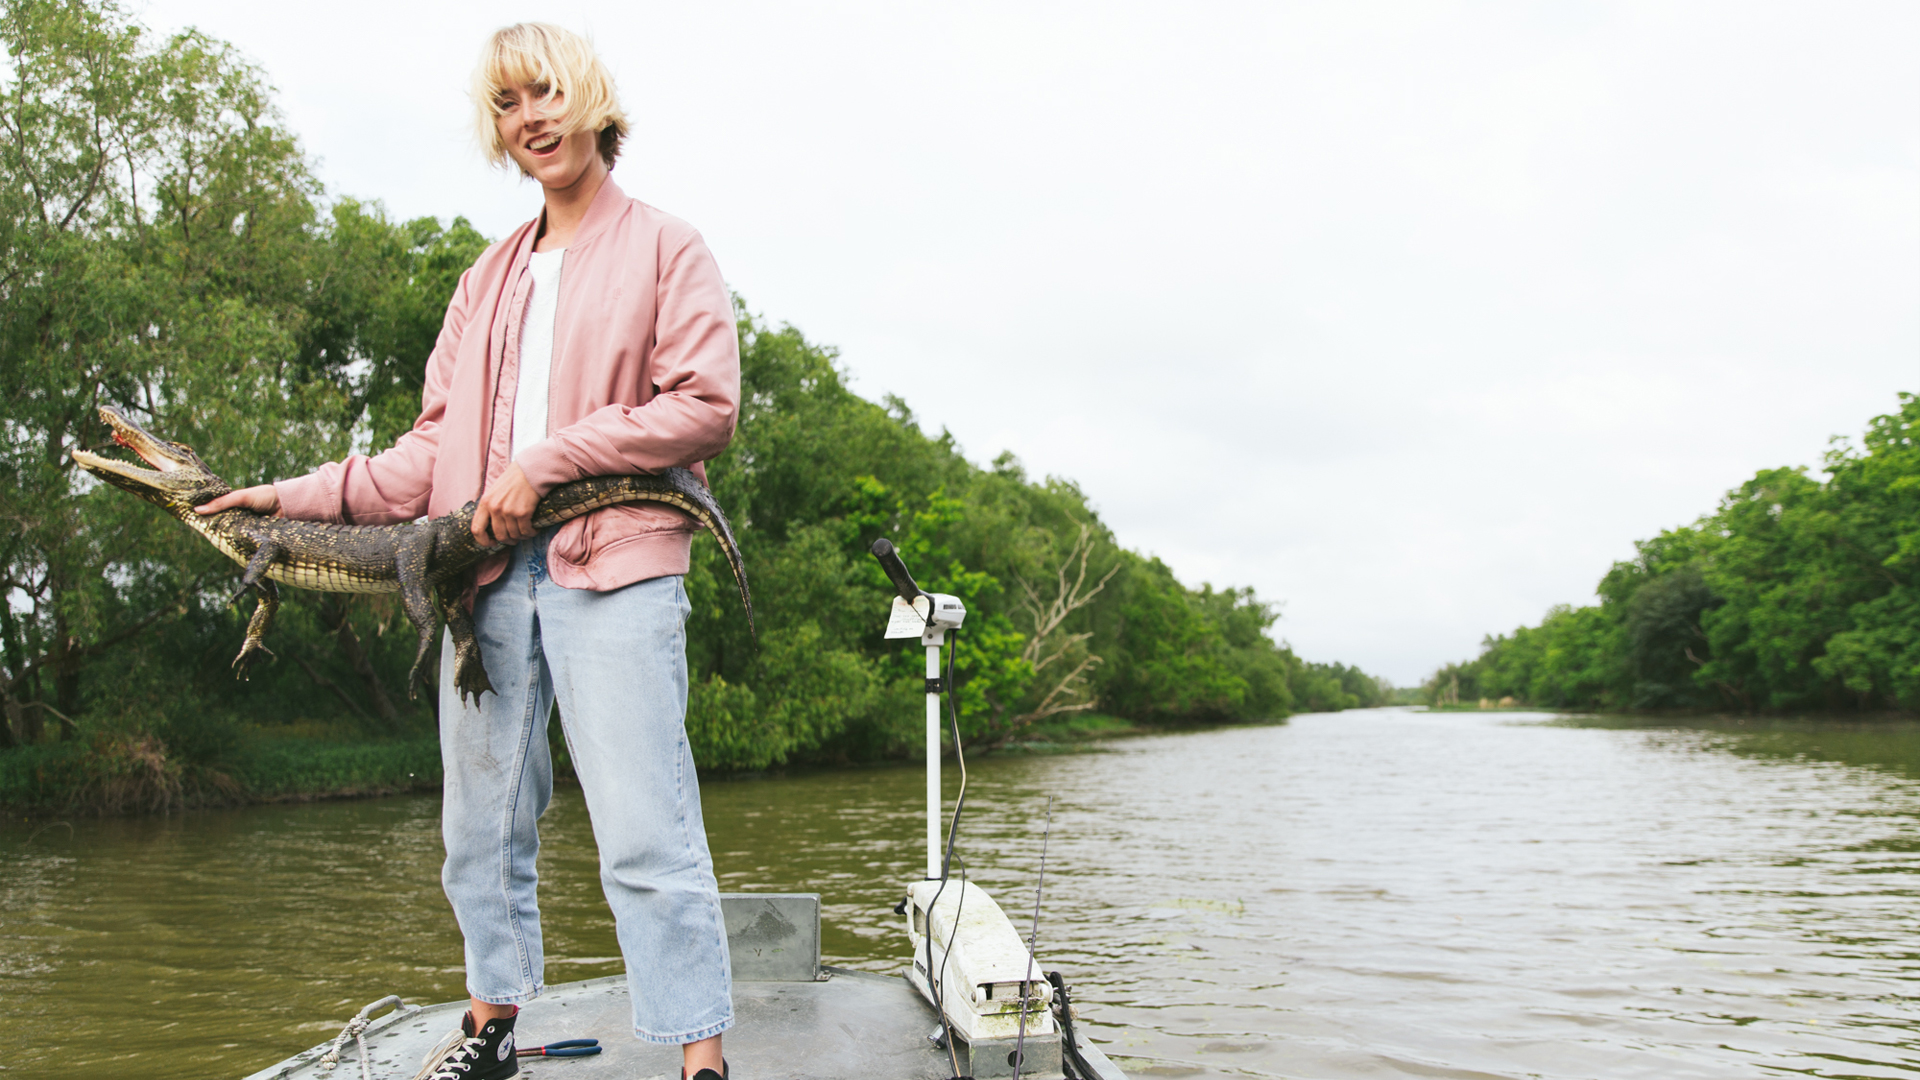 Laura Austin holding an alligator on a boat